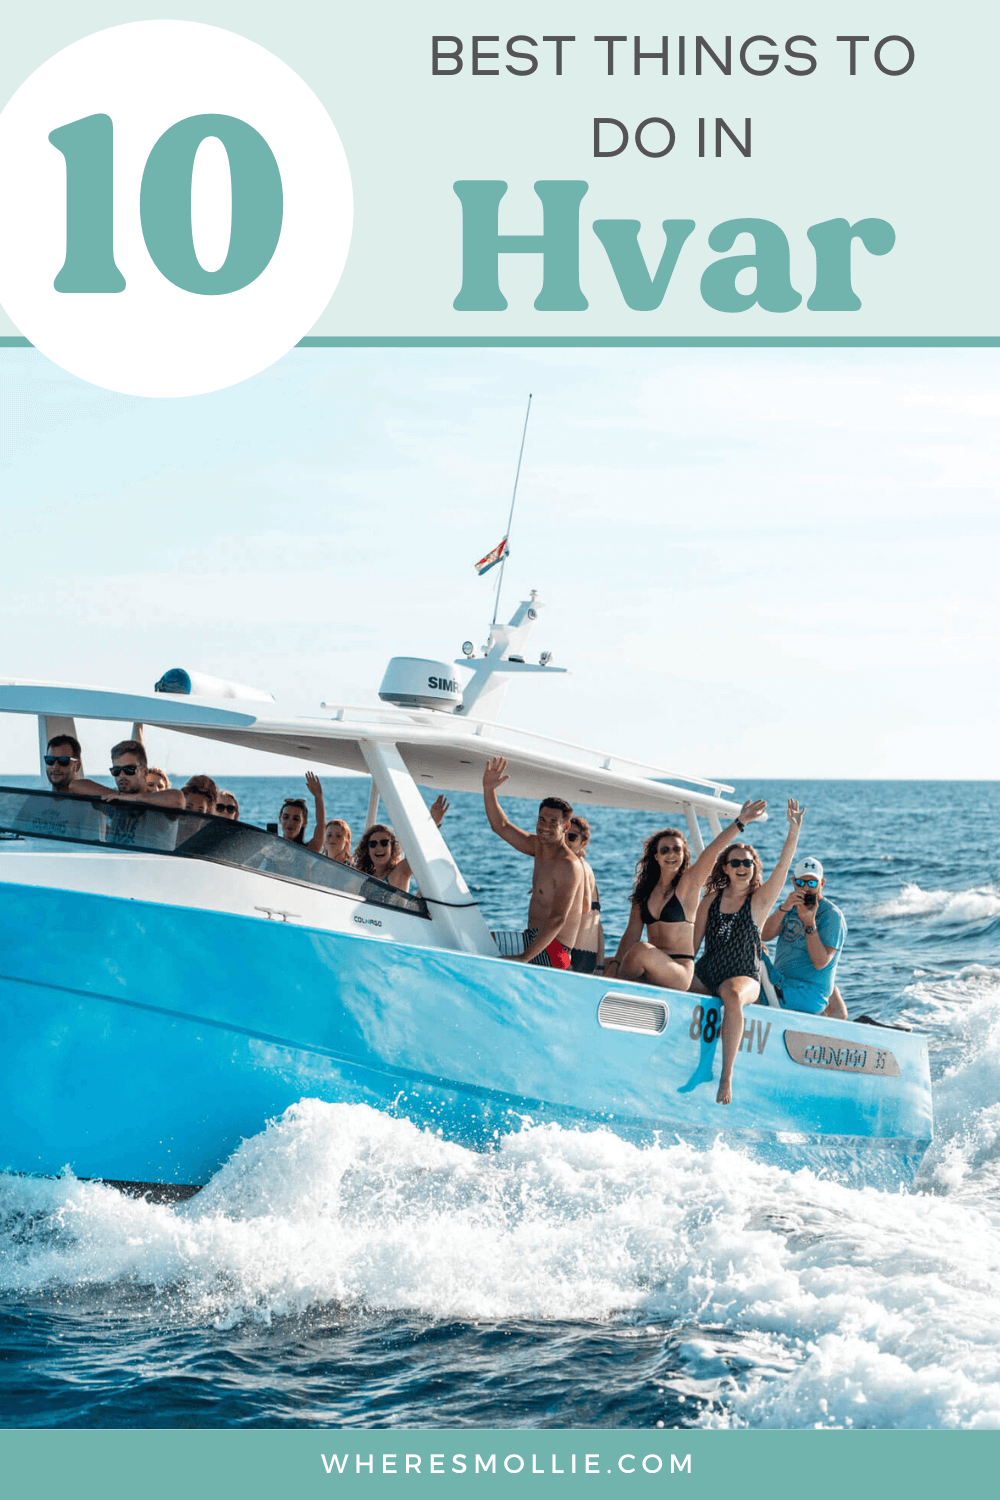 The best things to do in Hvar, Croatia